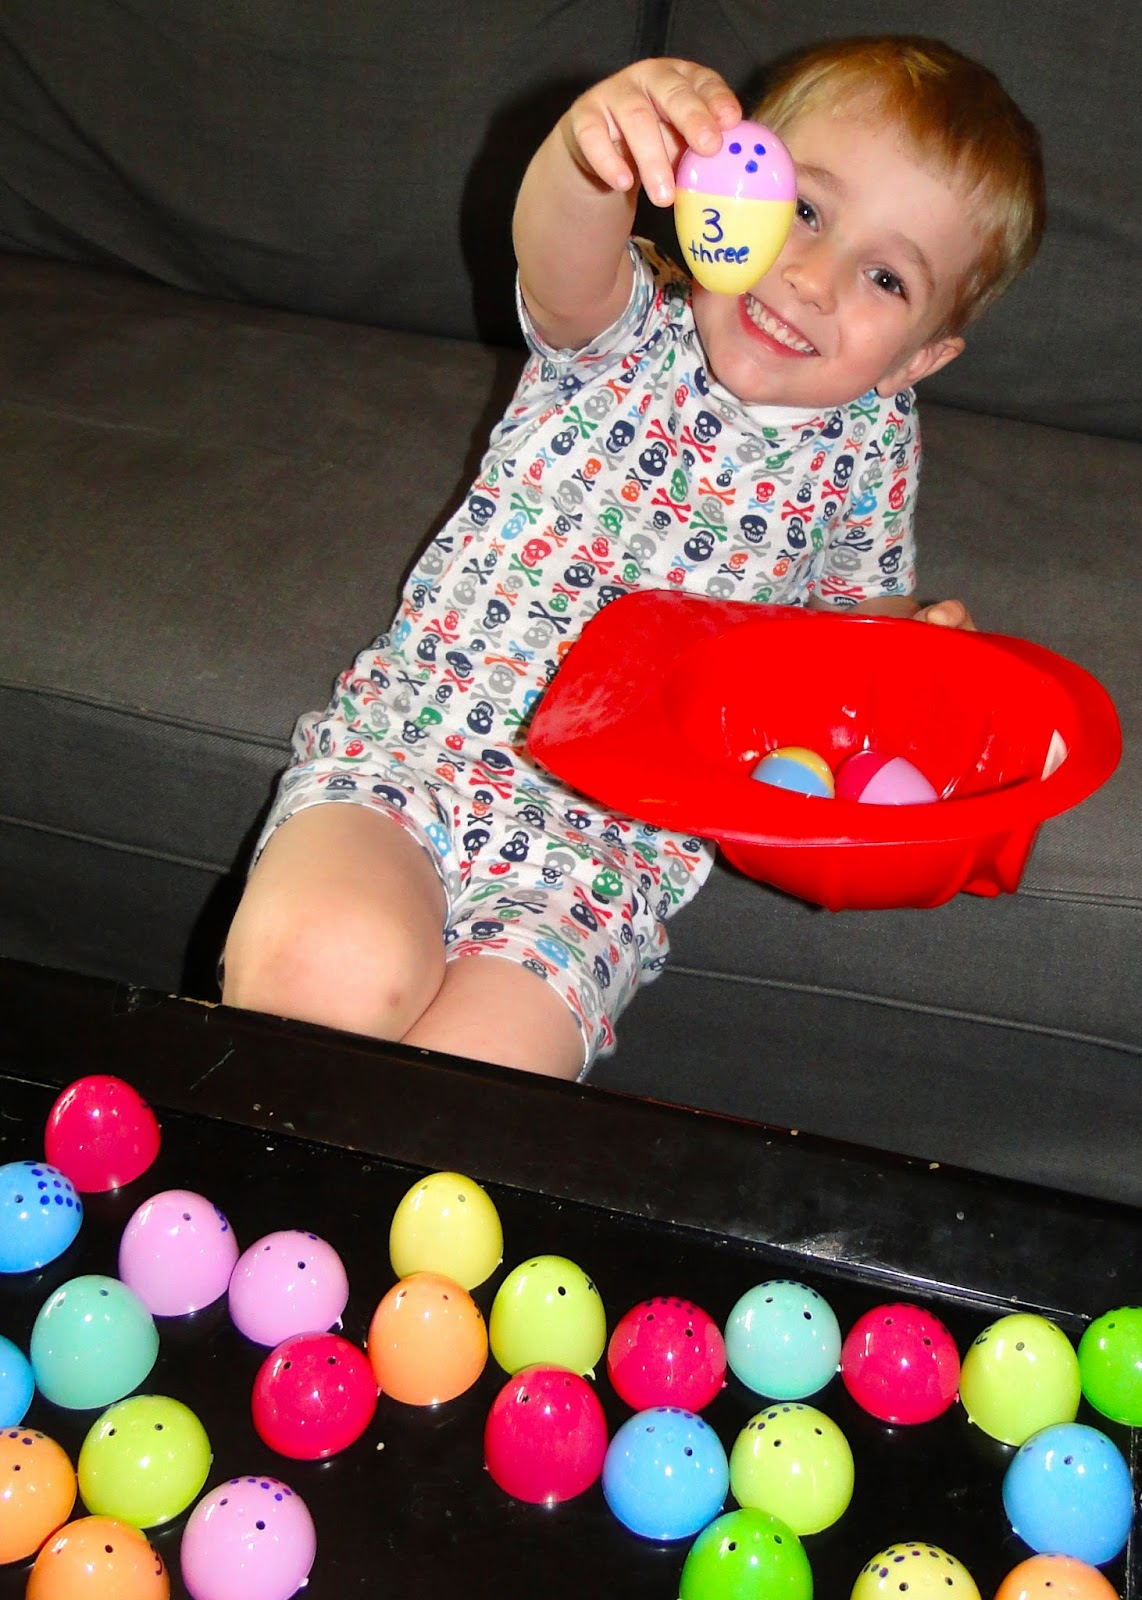 Child playing with toy eggs